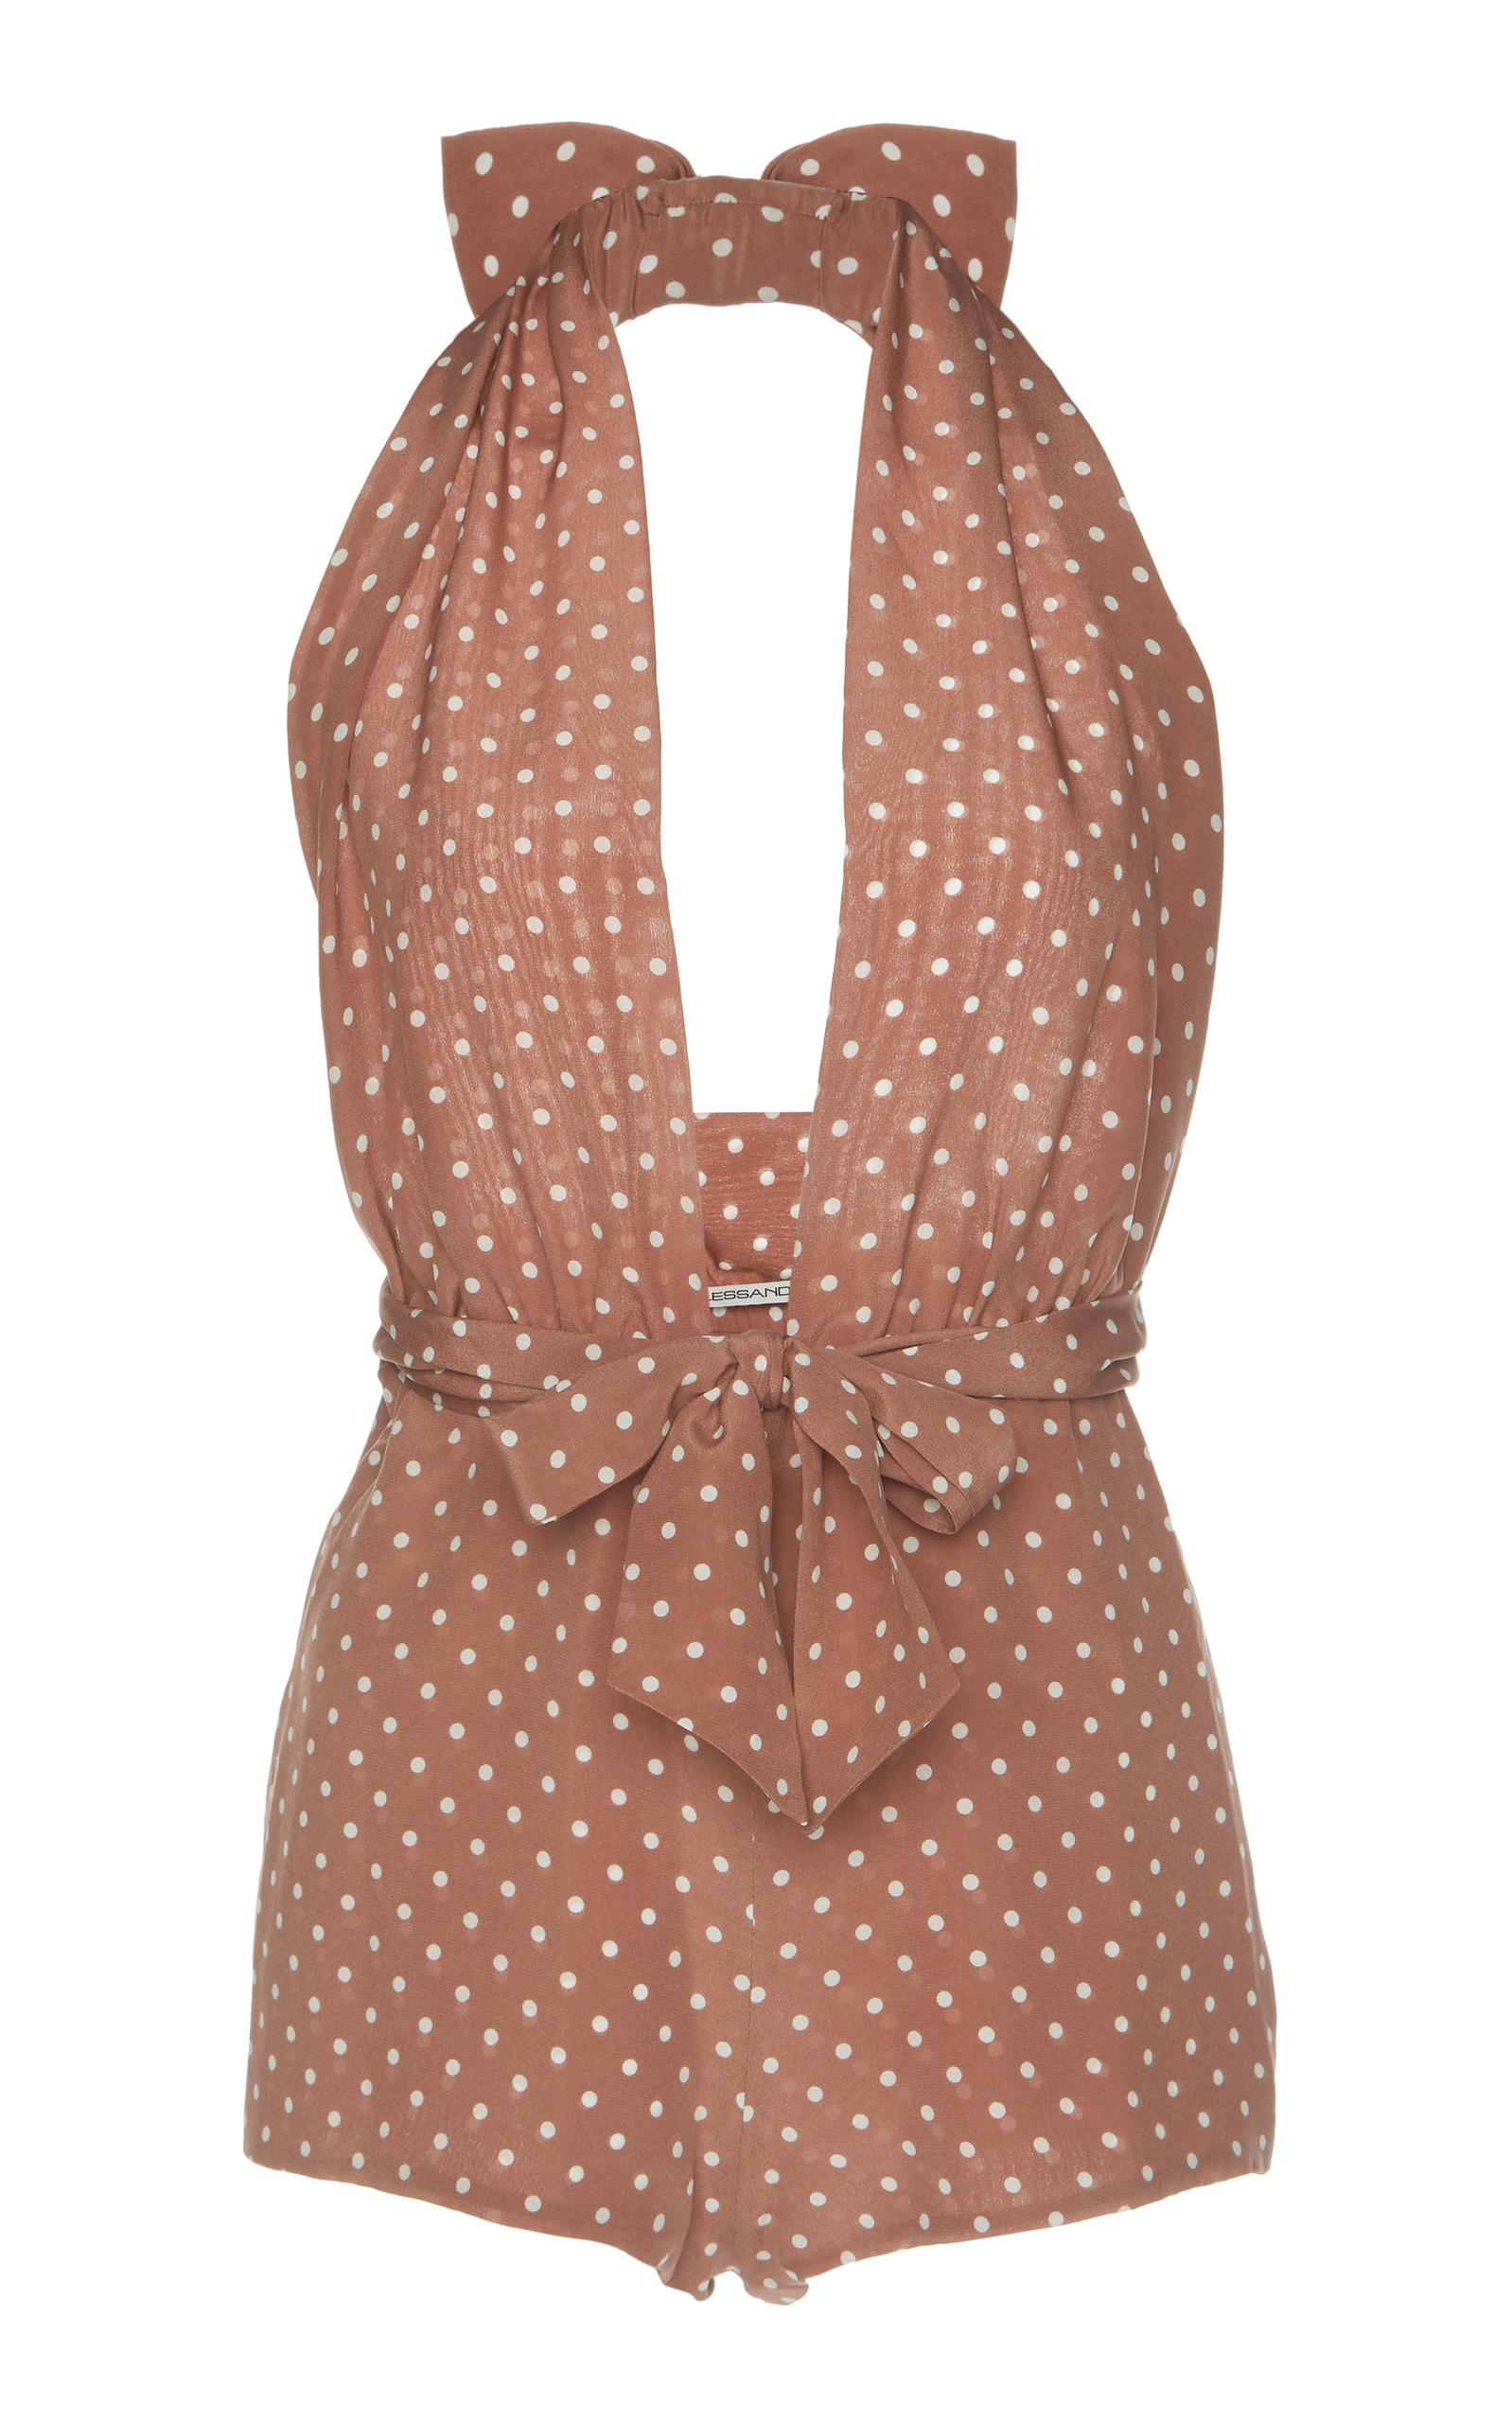 Alessandra Rich Lounge By The Pool Polka Dot Playsuit In Brown